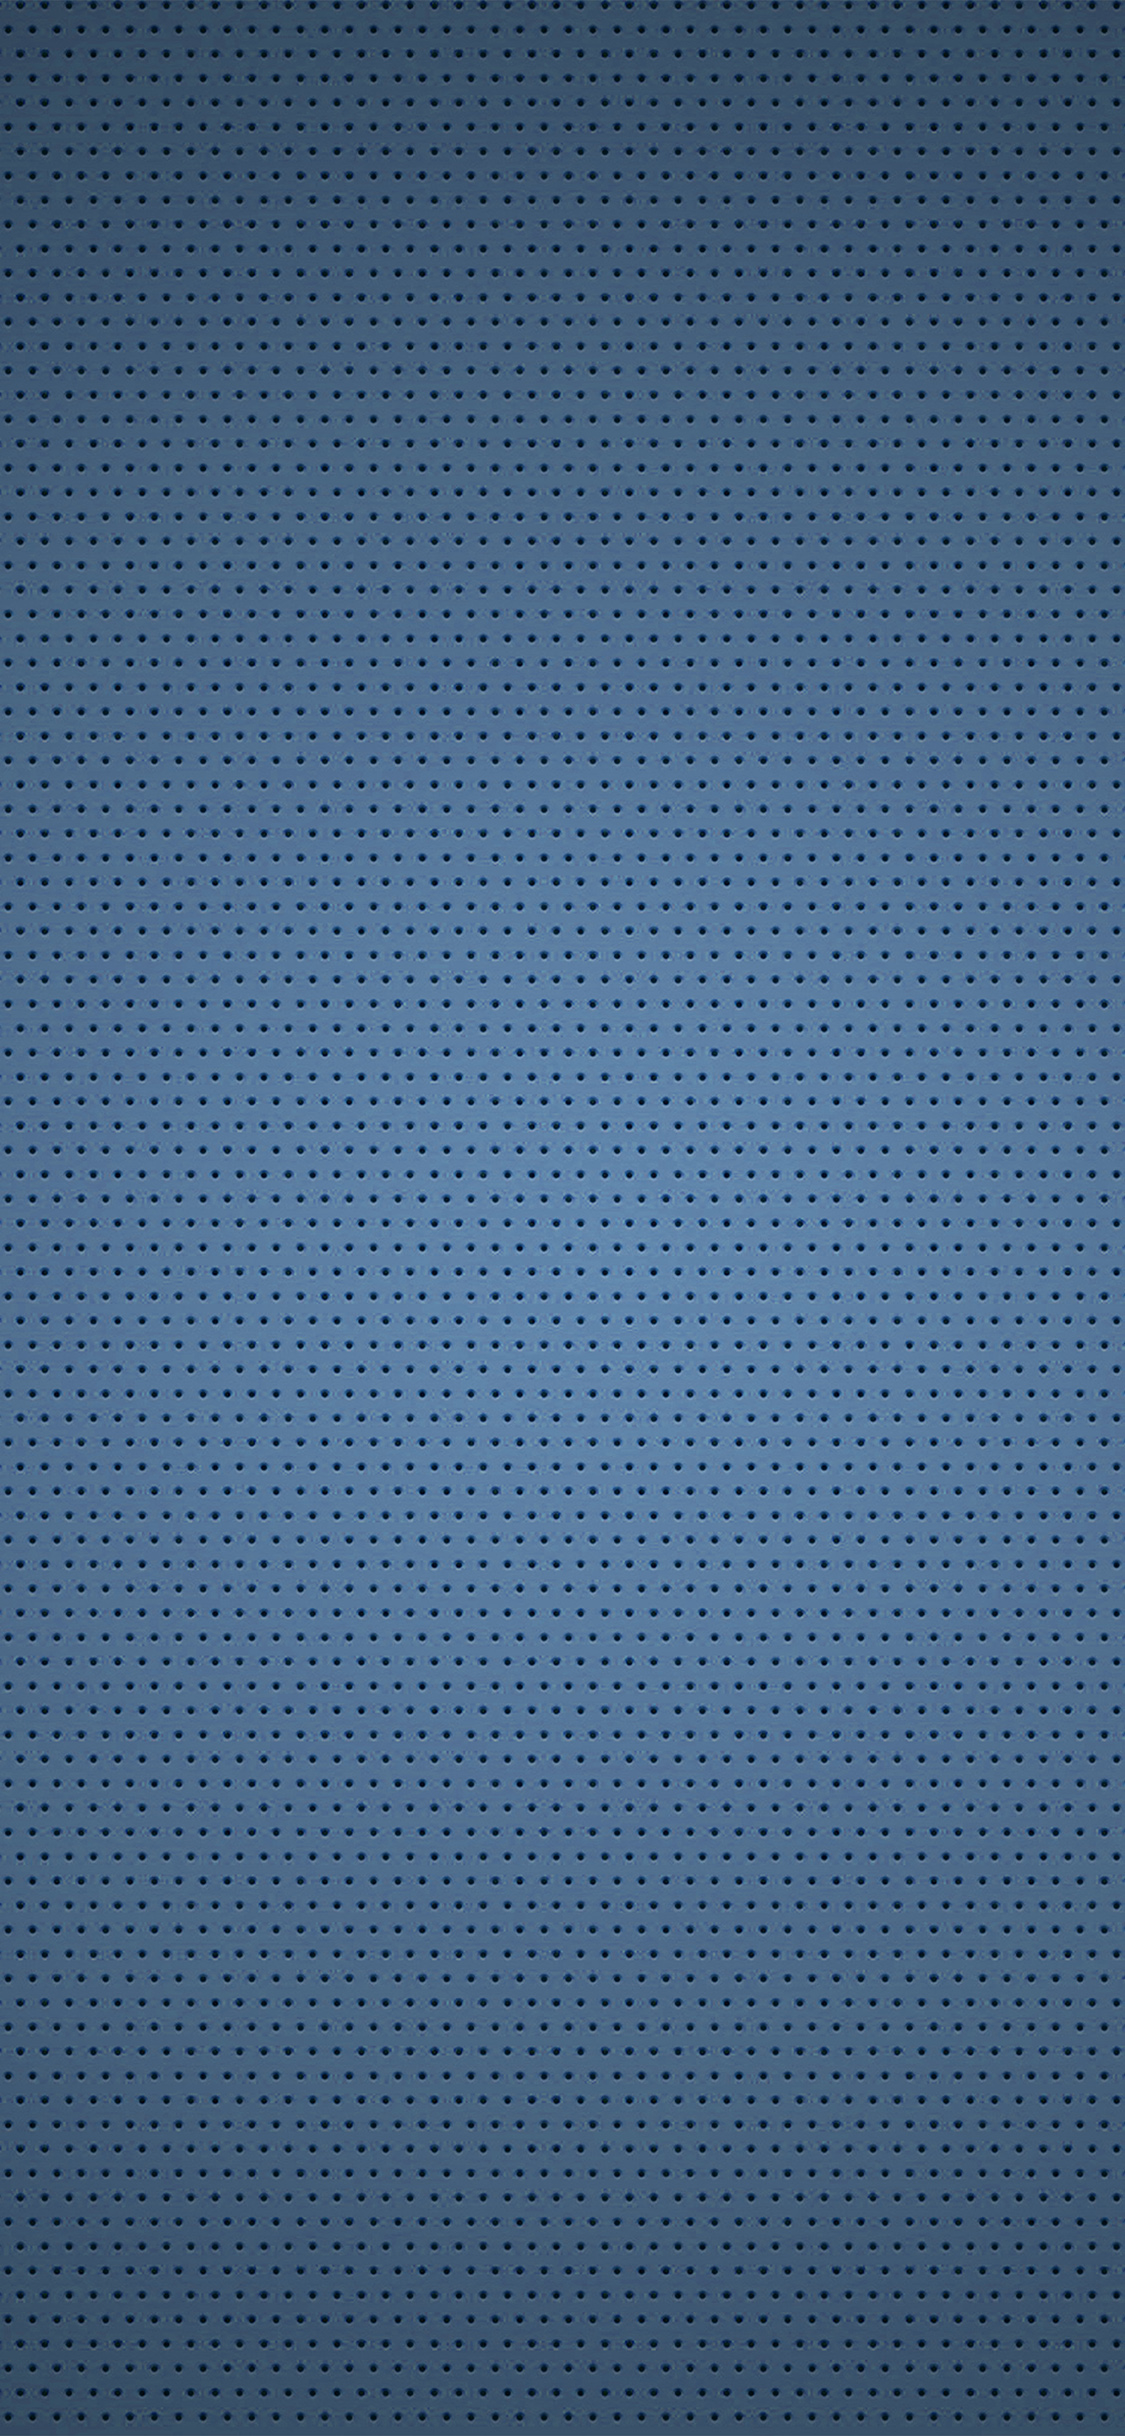 iPhonexpapers.com-Apple-iPhone-wallpaper-vs41-dot-blue-texture-pattern